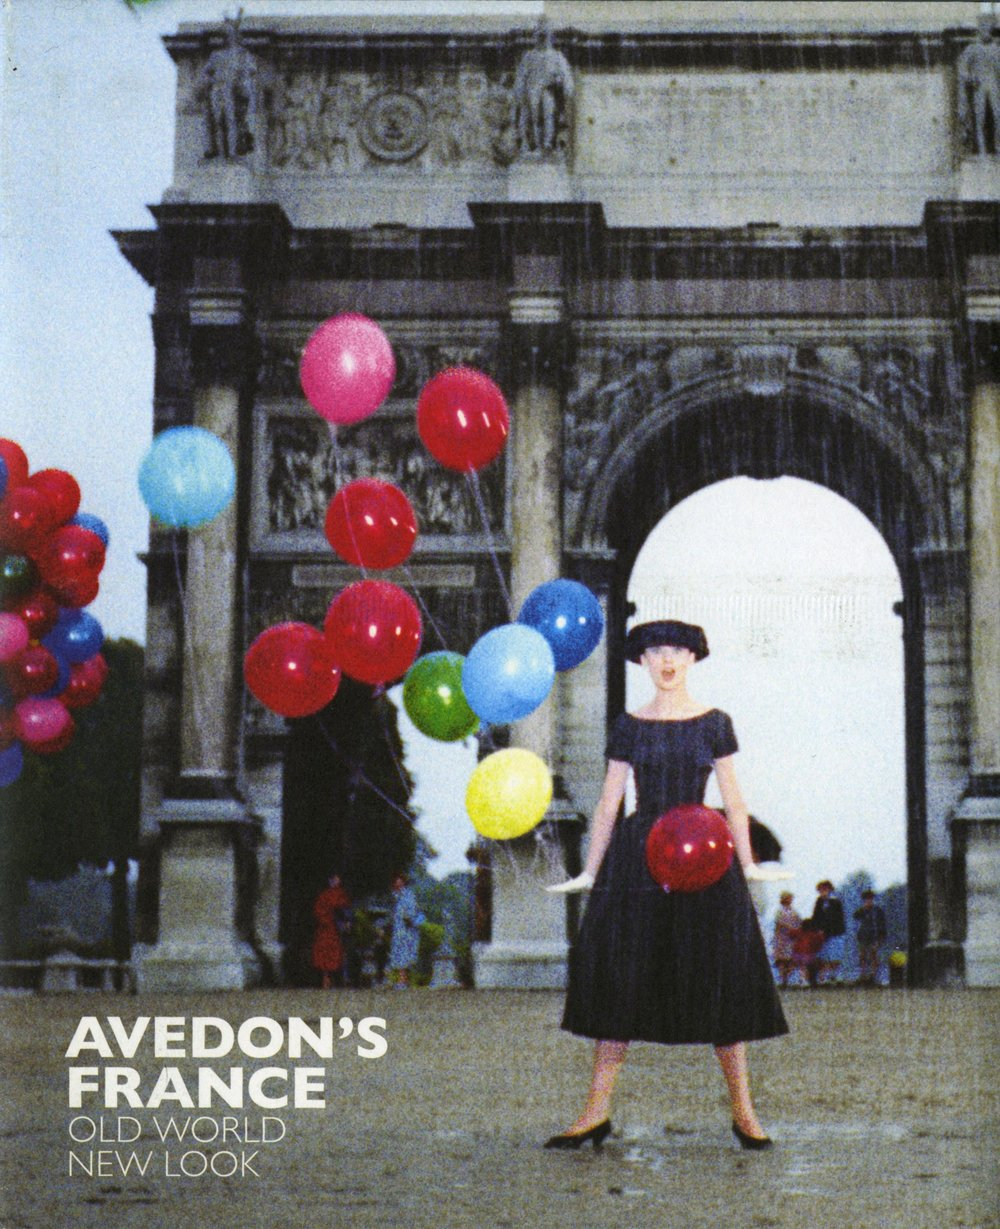 Avedon's France, Old World, New Look (2016), essays by Bob Rubin and Marianne Le Galliard